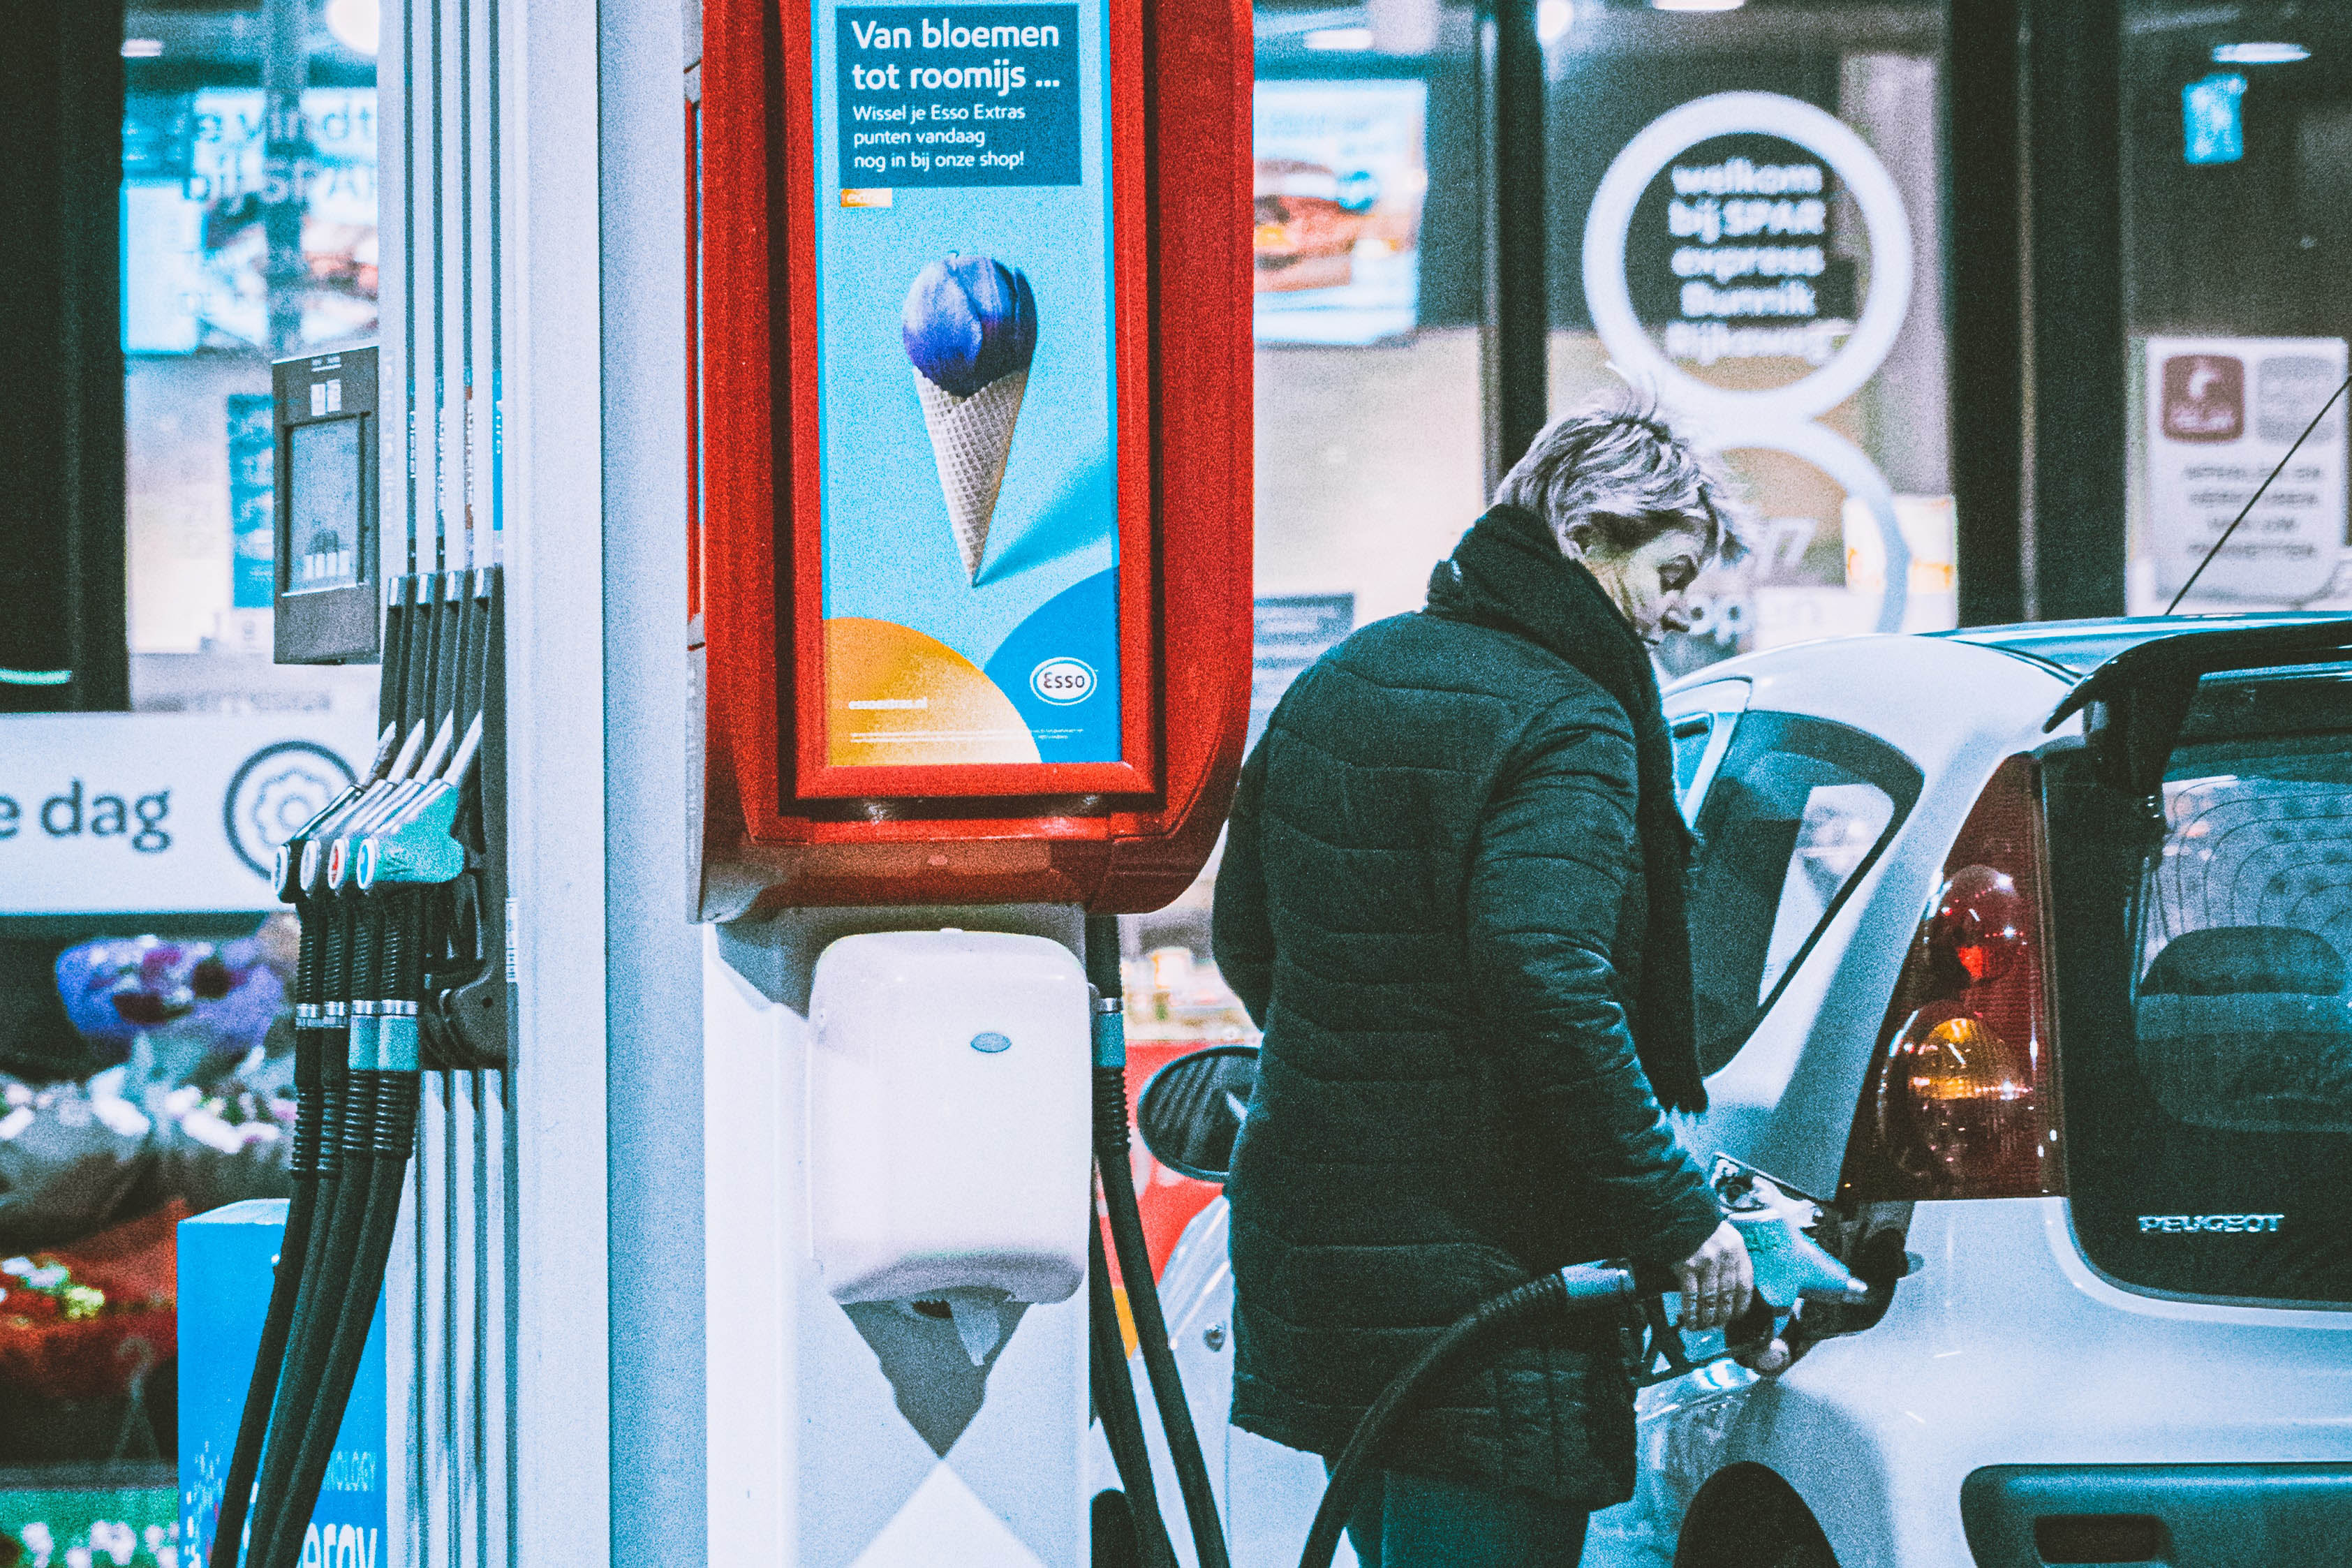 A women filling up her vehicle at a gas station besides an advertisement that offers everything from flowers to ice cream in Dutch.